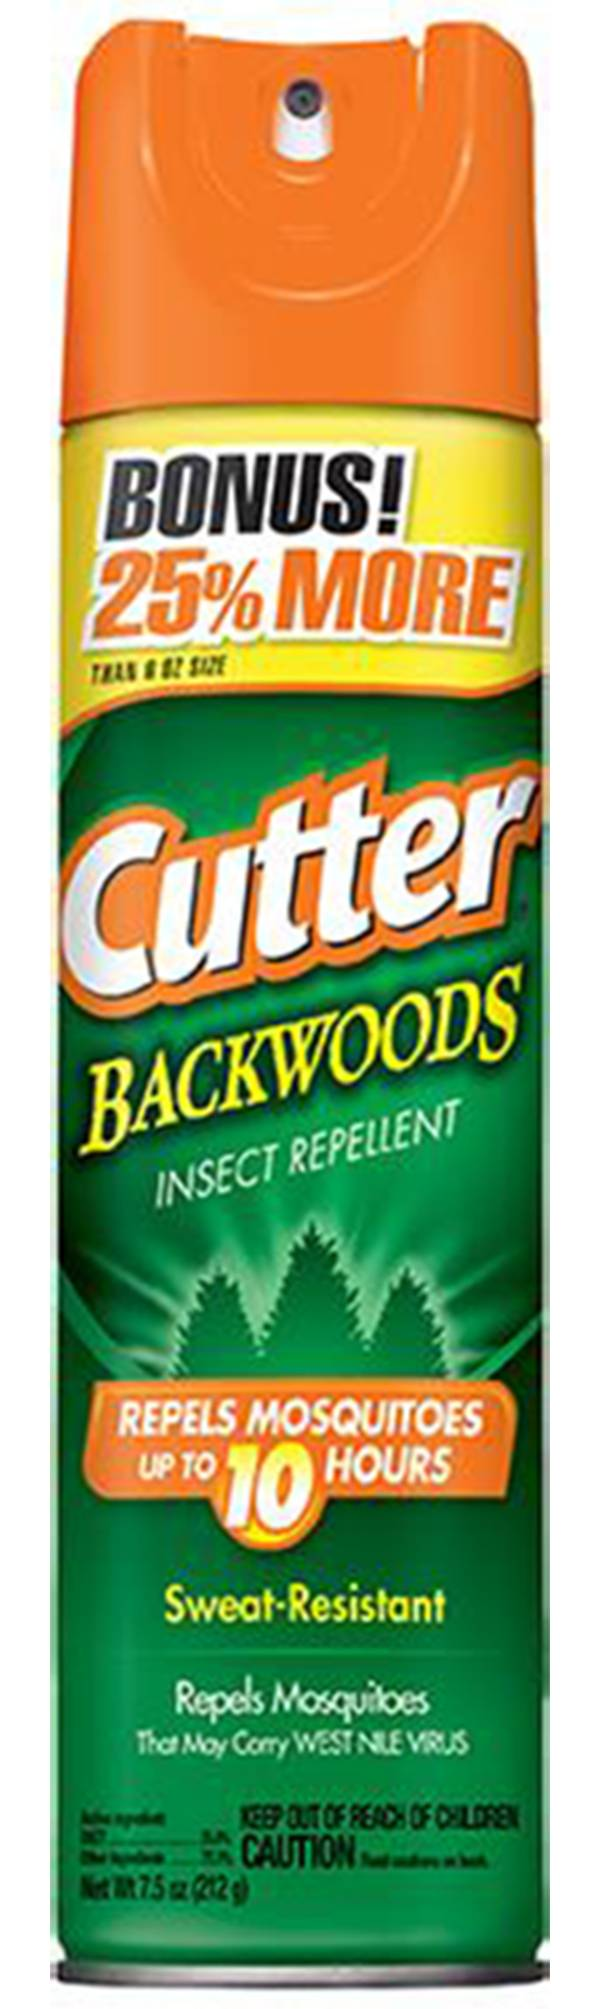 Cutter Backwoods 7.5 oz. Insect Repellent Aerosol product image